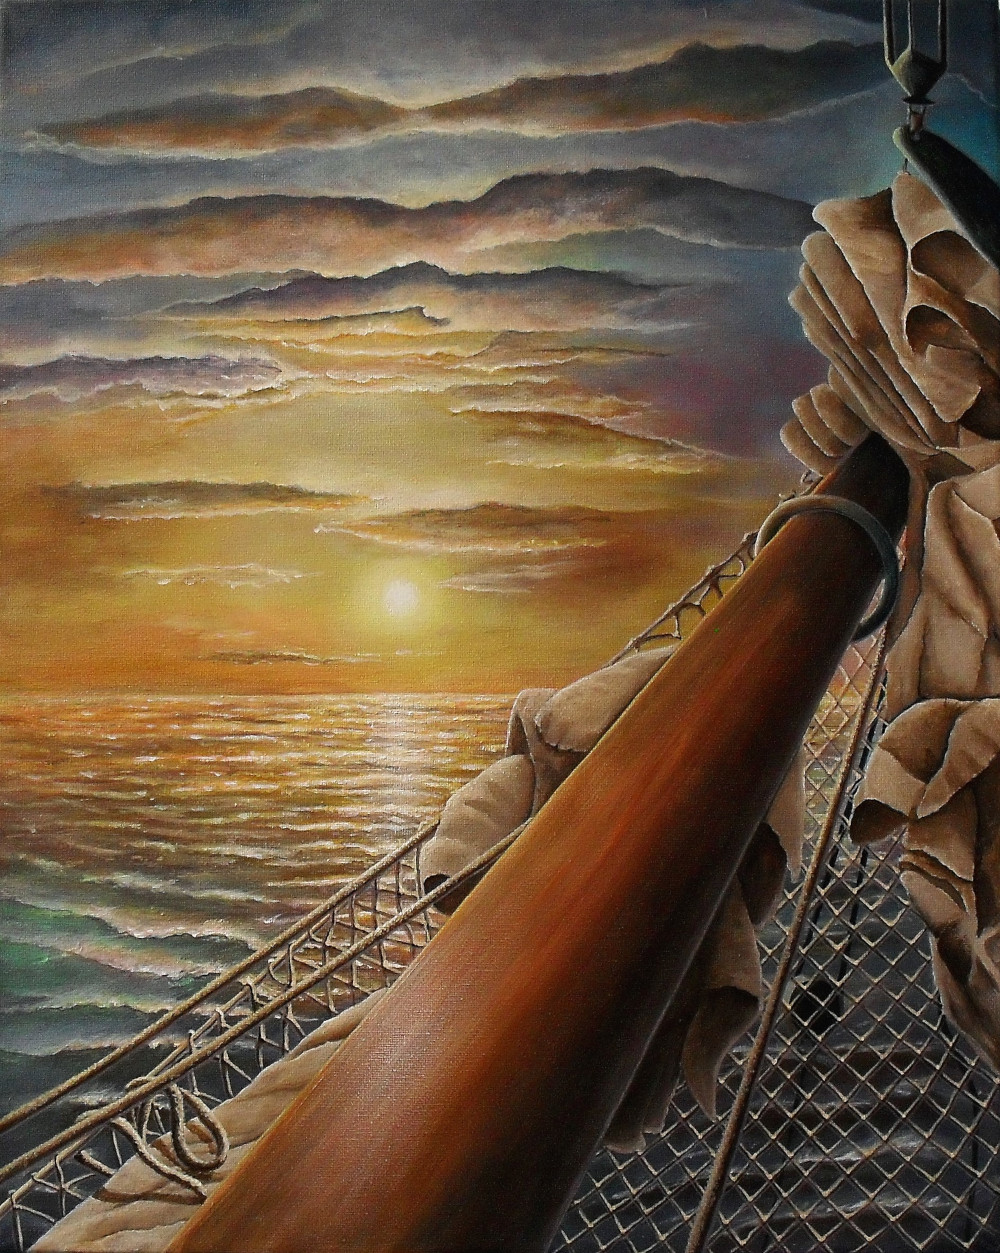 Golden Future. This is a painting of the beautiful sailing ship Amore Vici.